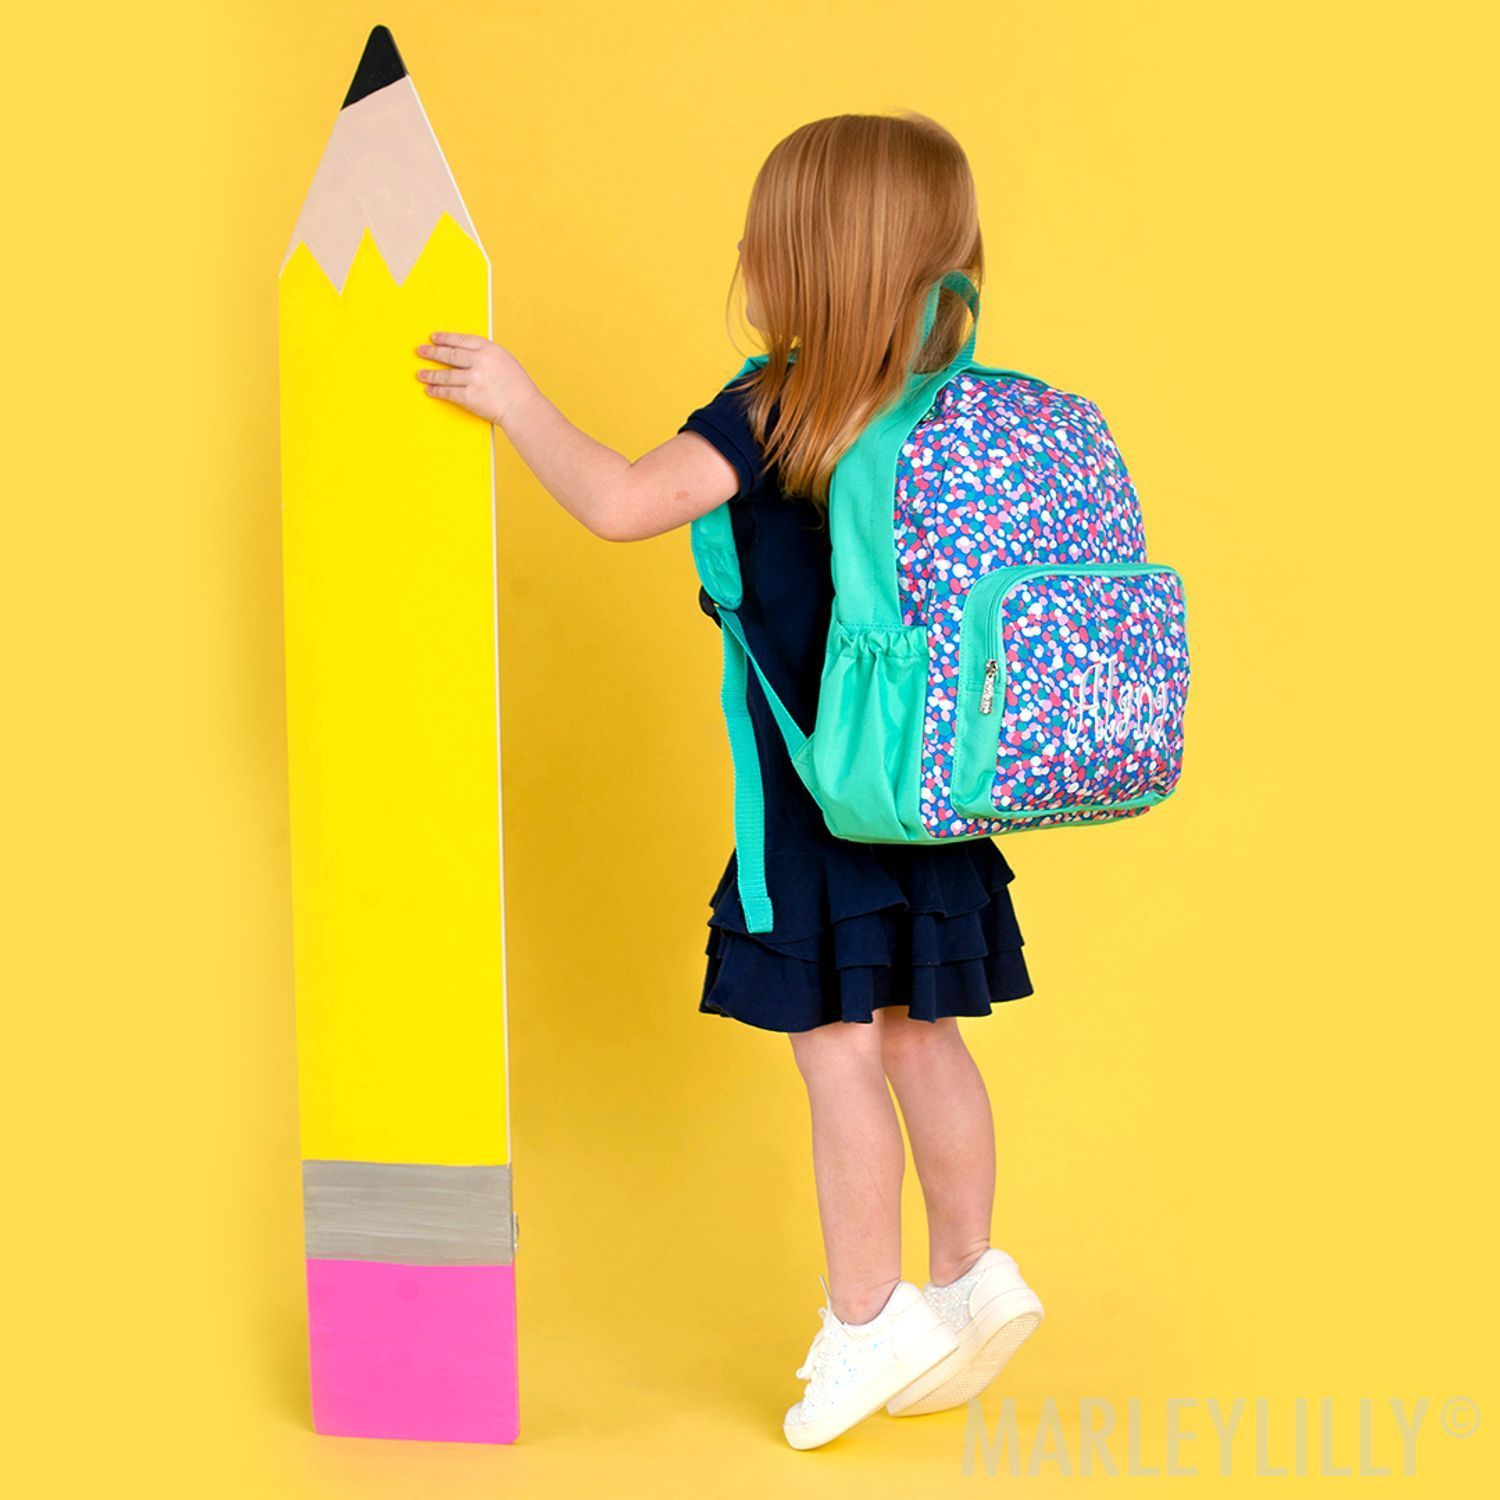 005ef4e4911a464d1d376f2866e91a3d - Personalized Backpack For Kindergarten